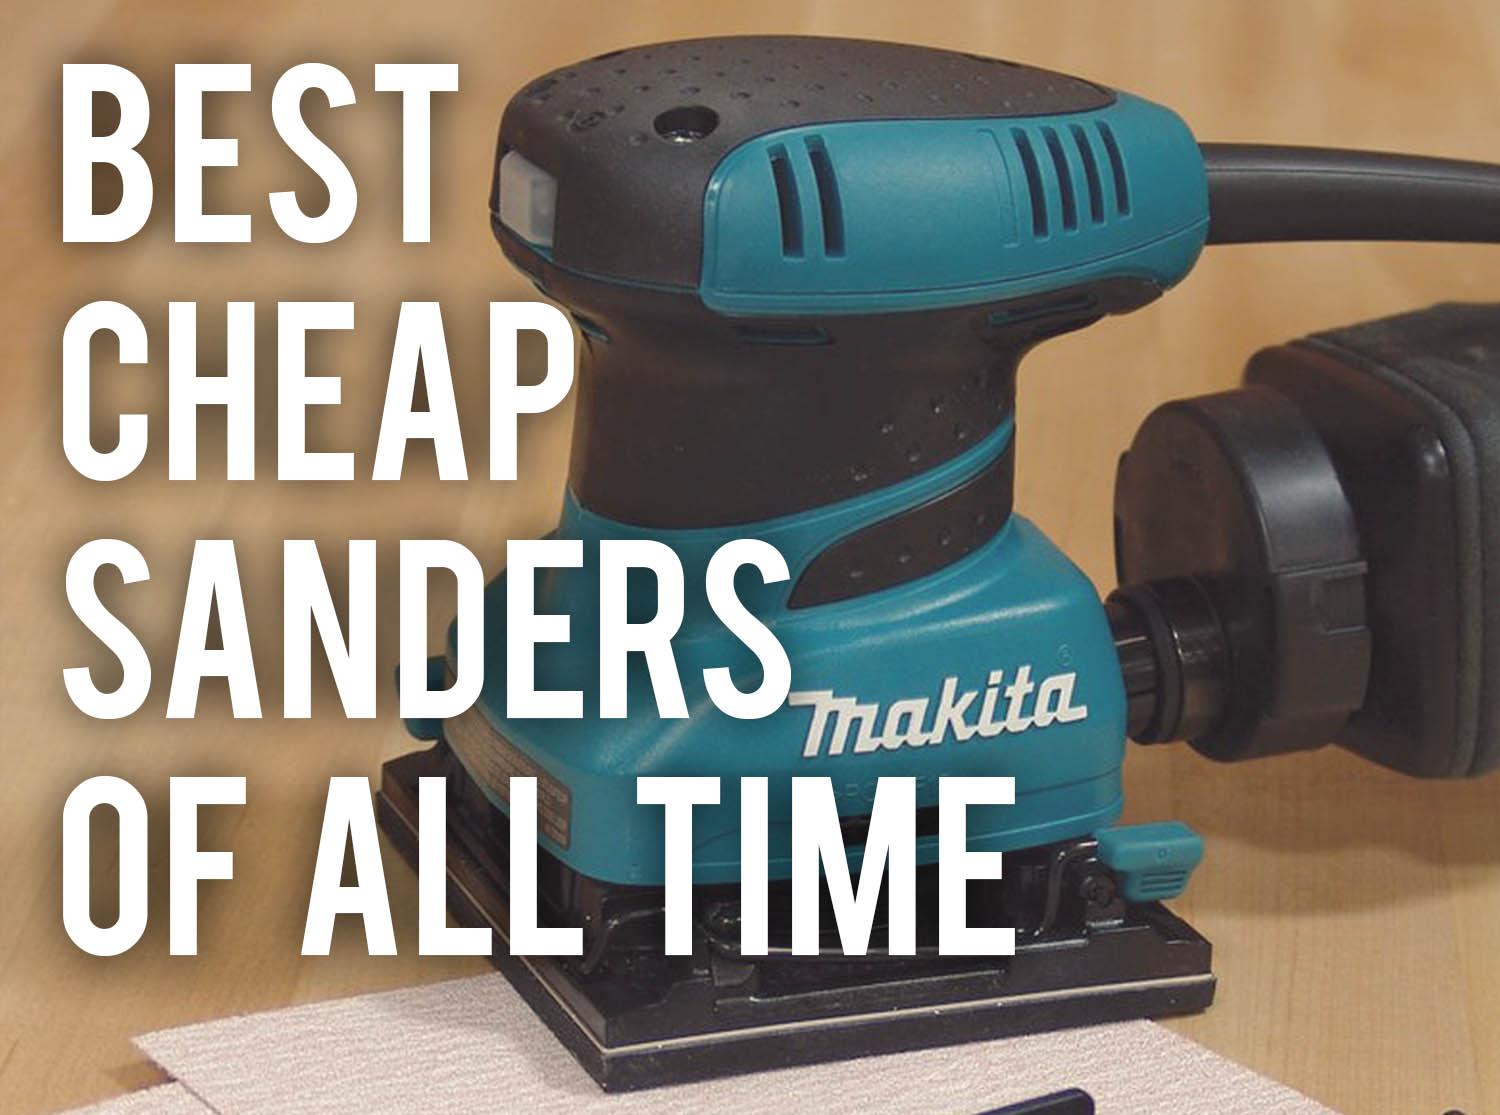 best cheap sanders of all time - 2019 (reviews) - sanderscore